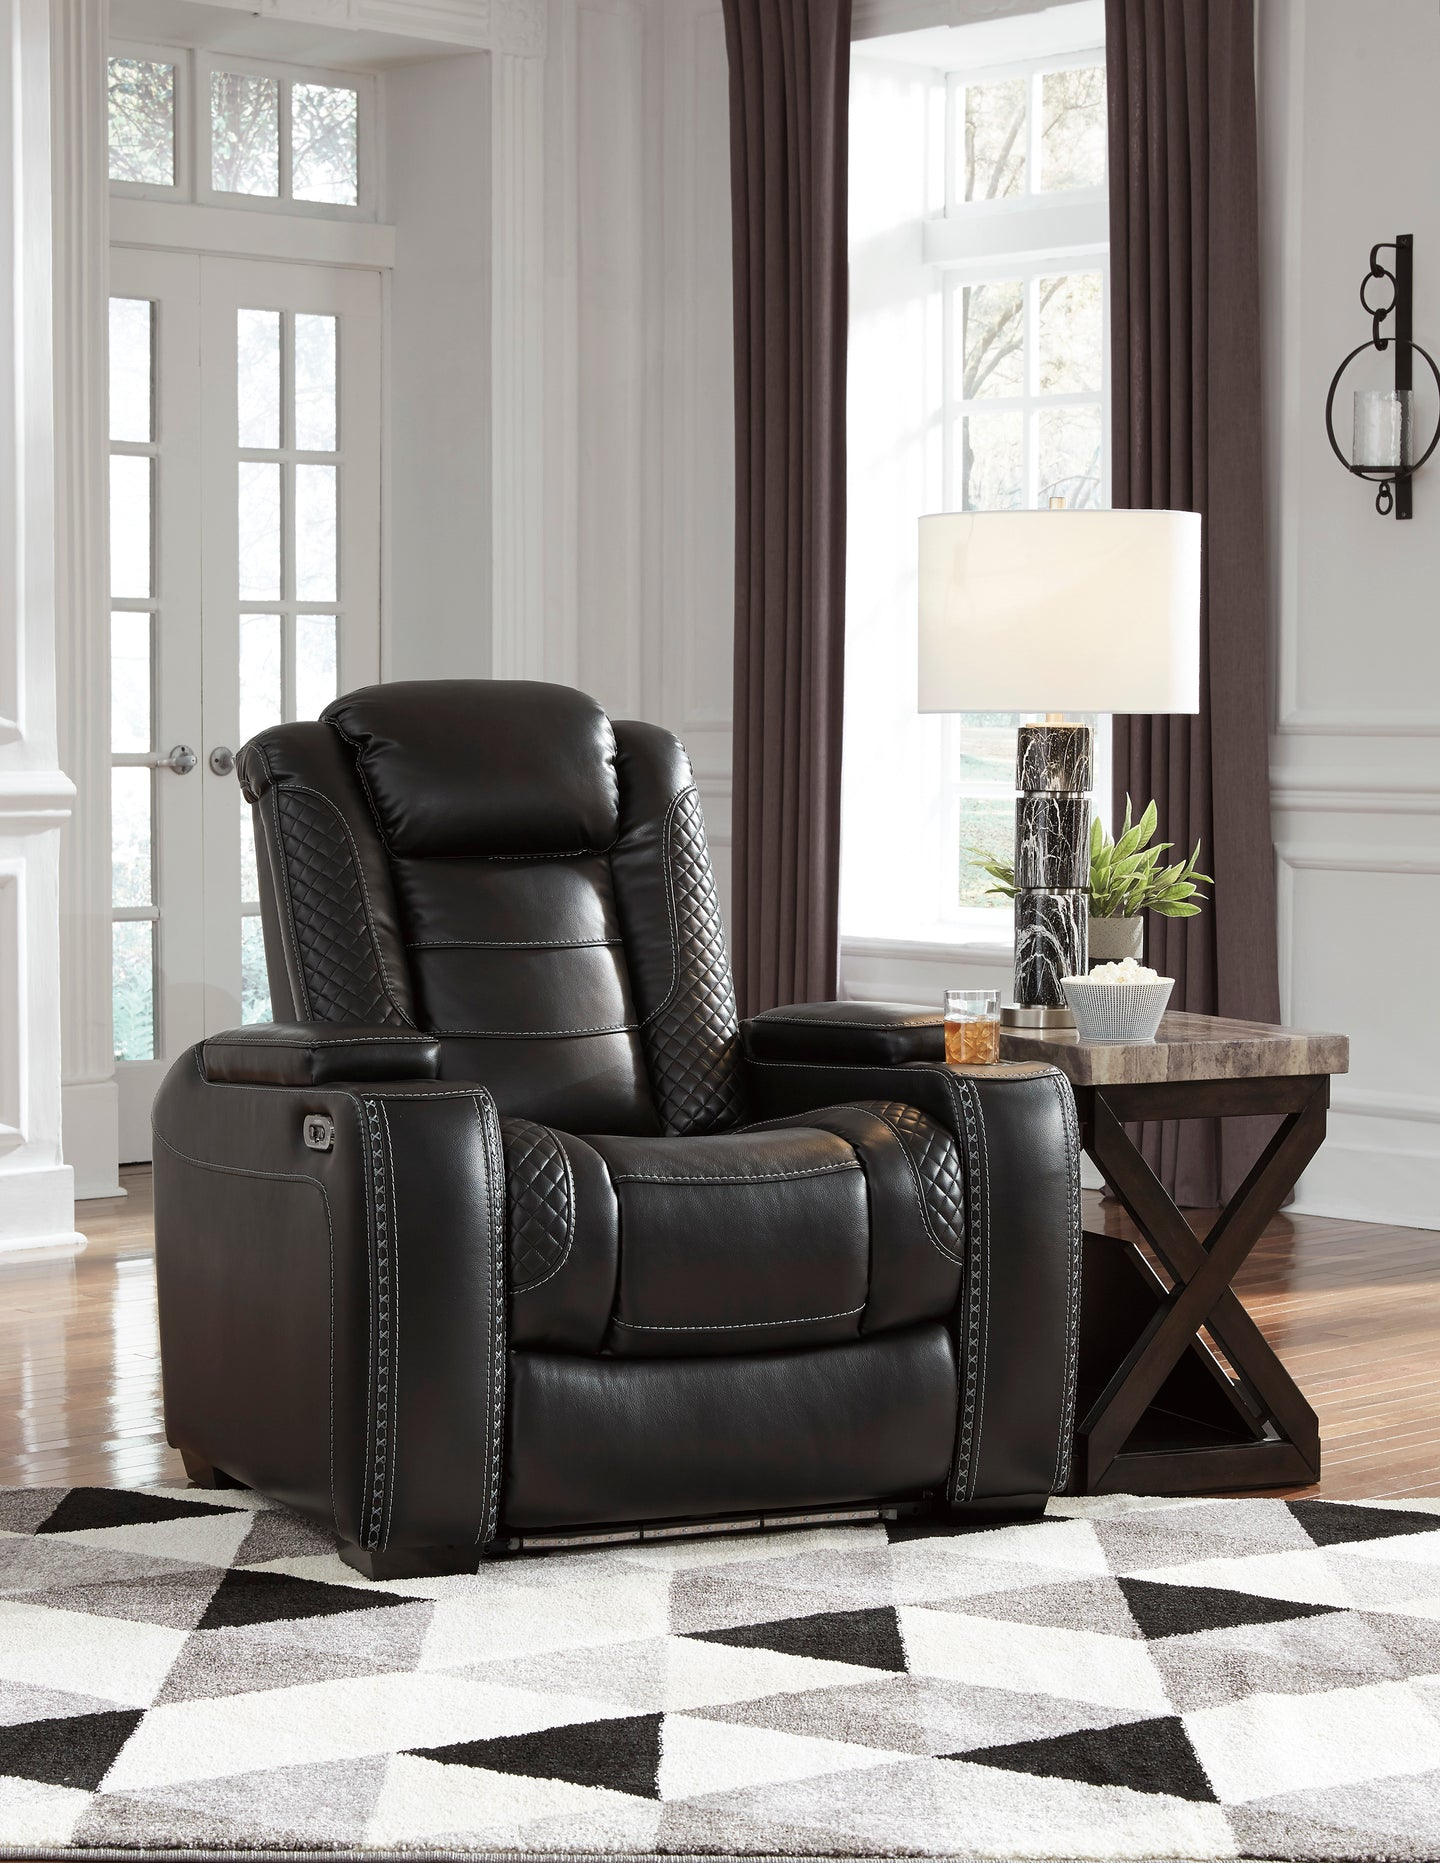 Signature Design 3700314 Party Time Black Leather Finish Recliner Chair